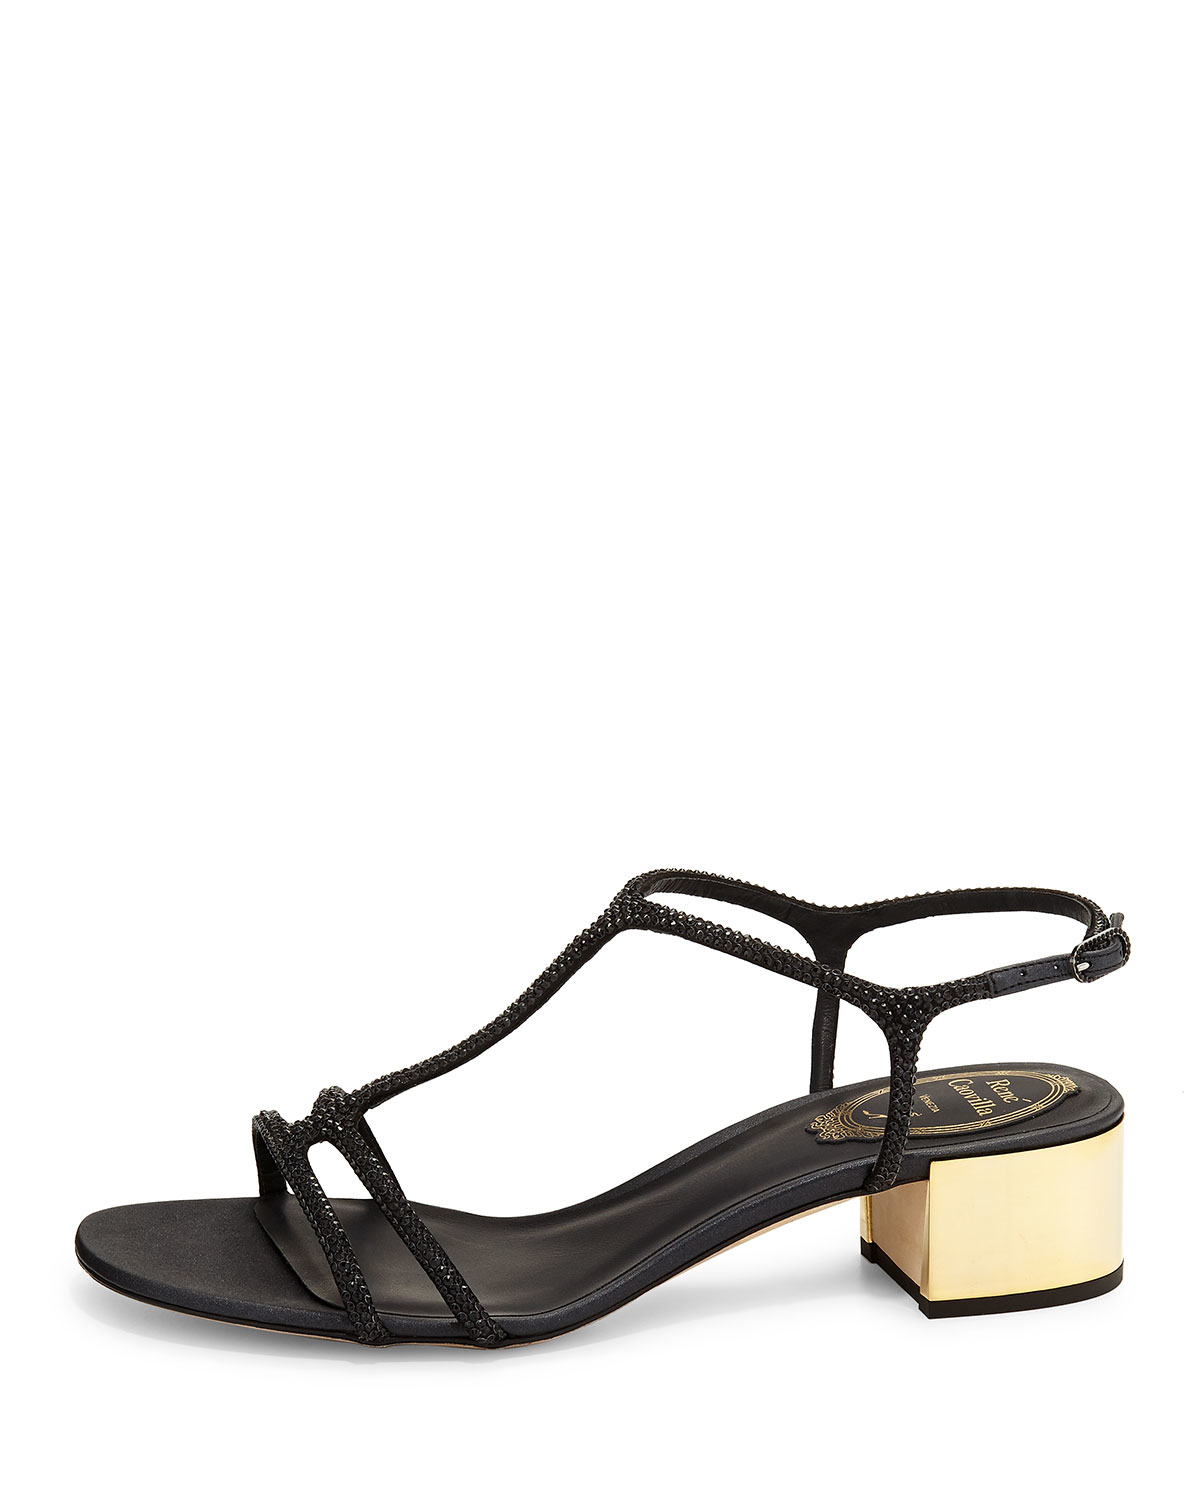 discount really René Caovilla Rene Caovilla Embossed Embellished Sandals view cheap price get authentic for sale buy cheap fashion Style NsH5Ac